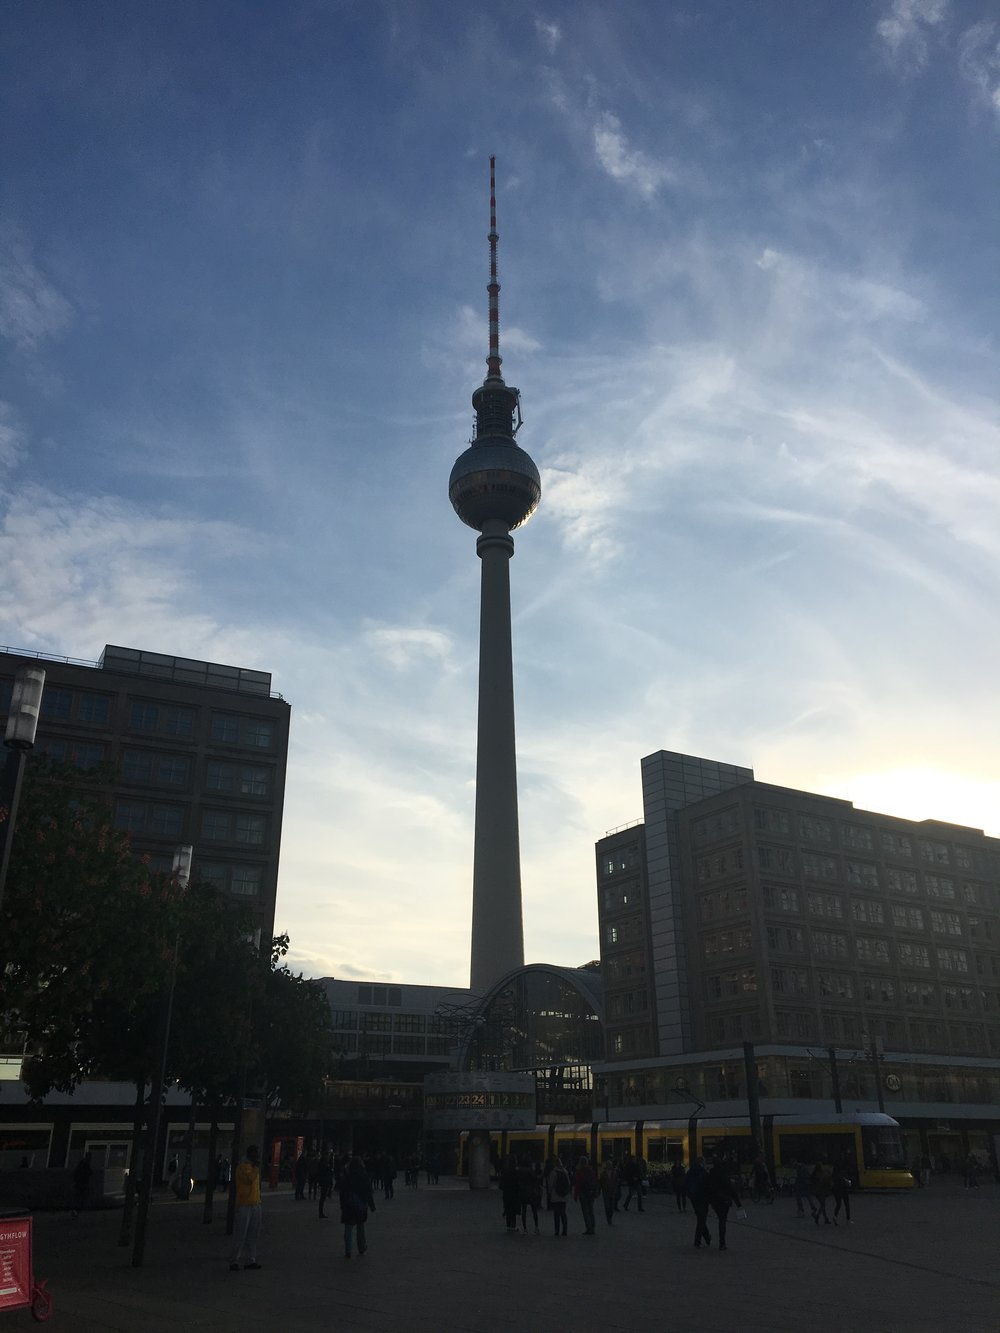 Alexanderplatz at sundown, May 2017